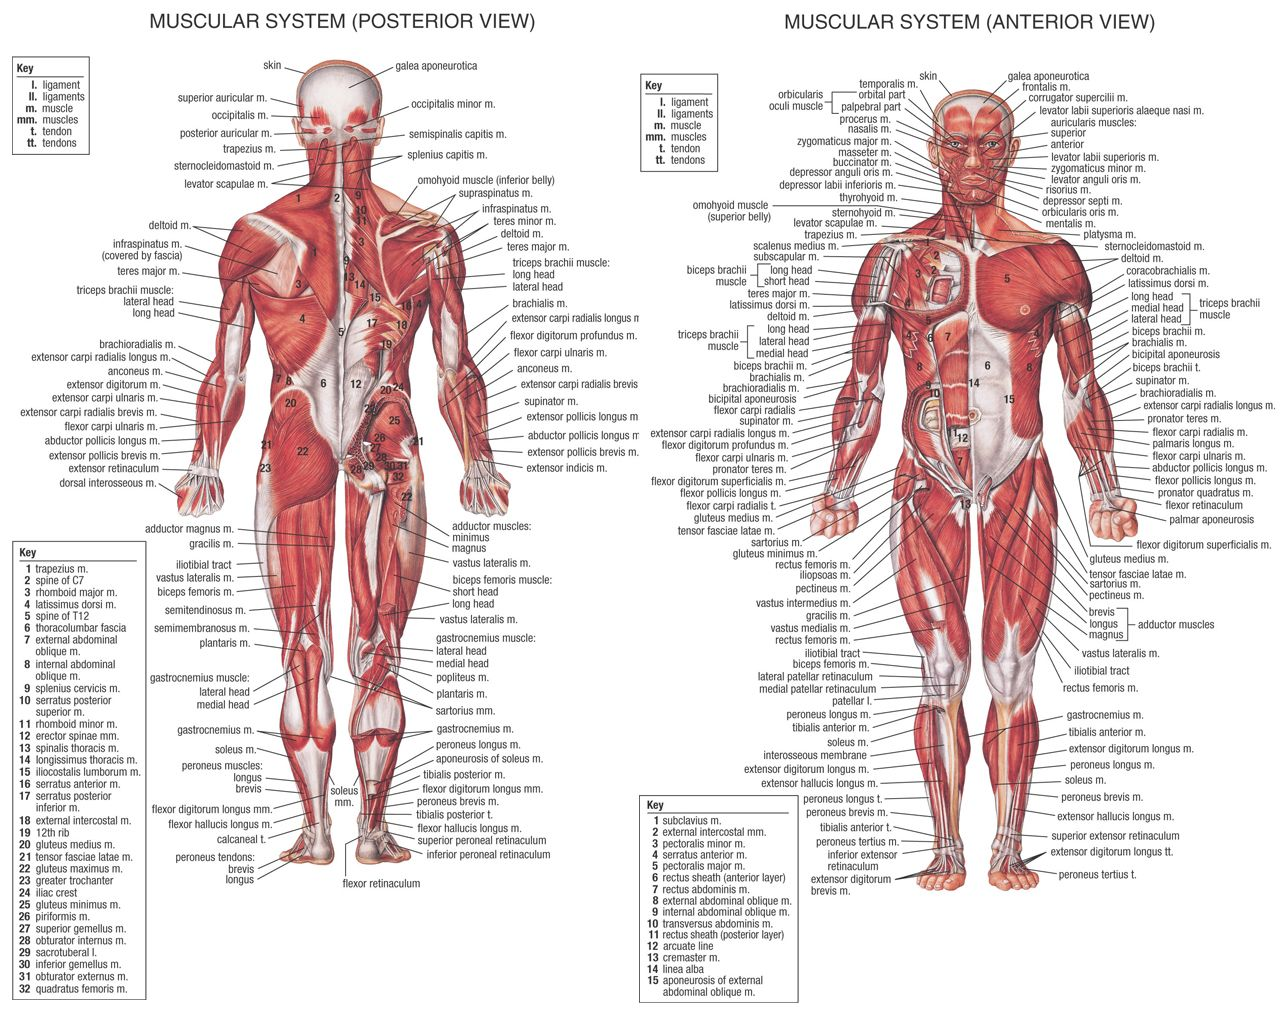 diagram of the muscular system images - learn human anatomy image, Muscles